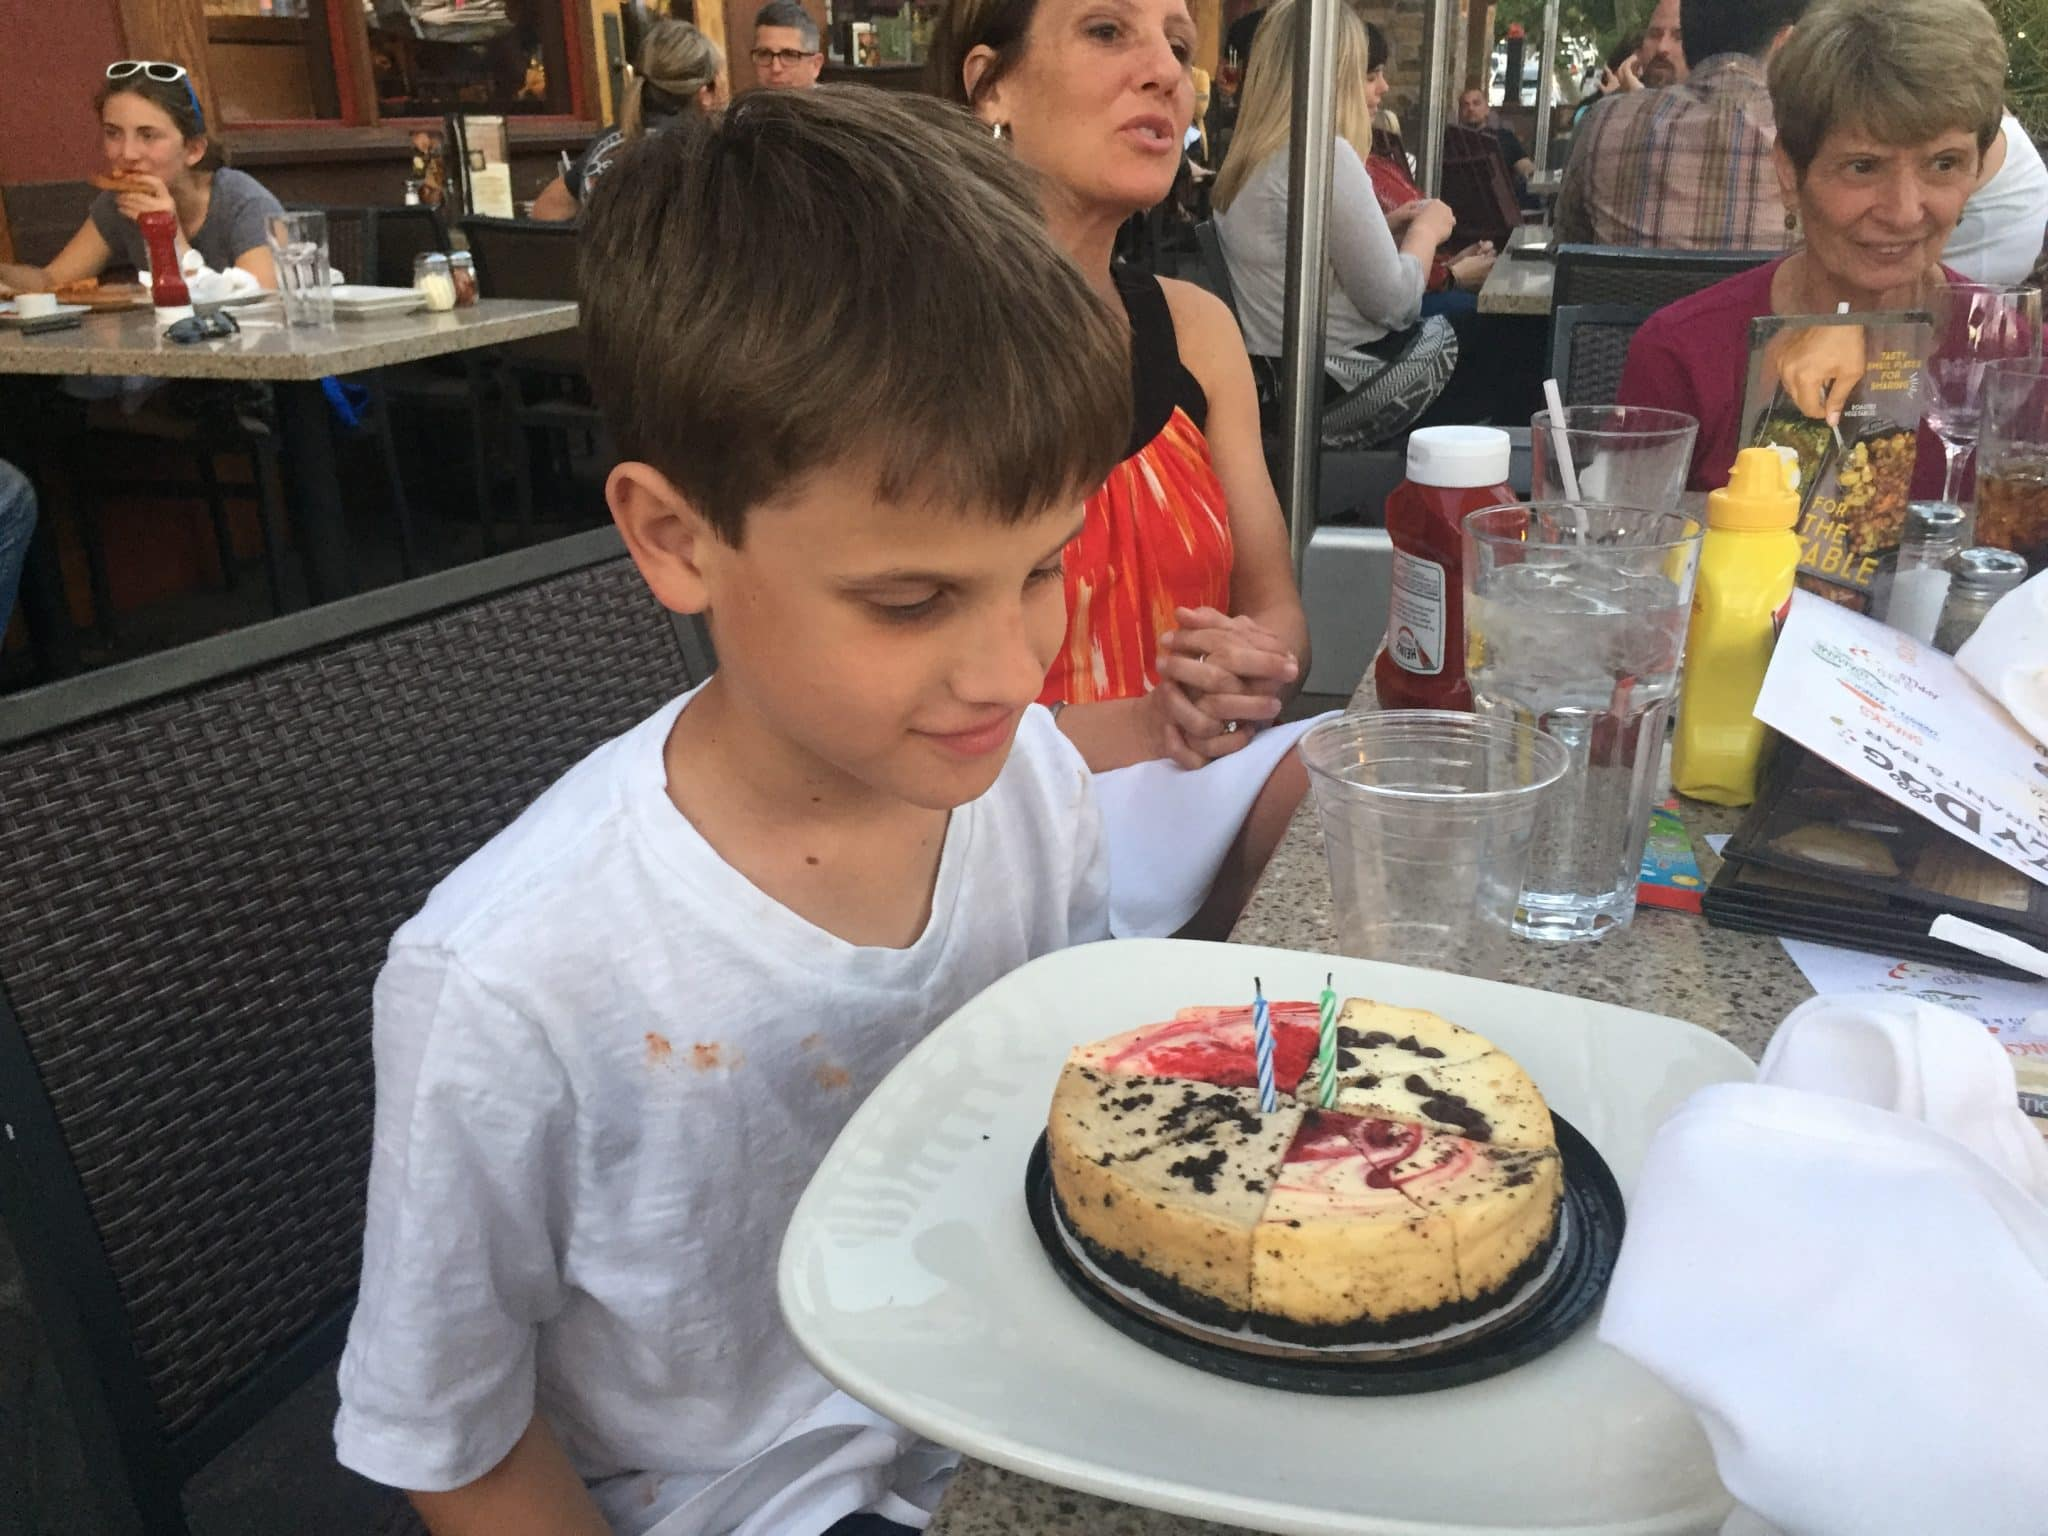 Sports Schedules: Picture of Young Boy looking at his birthday cake